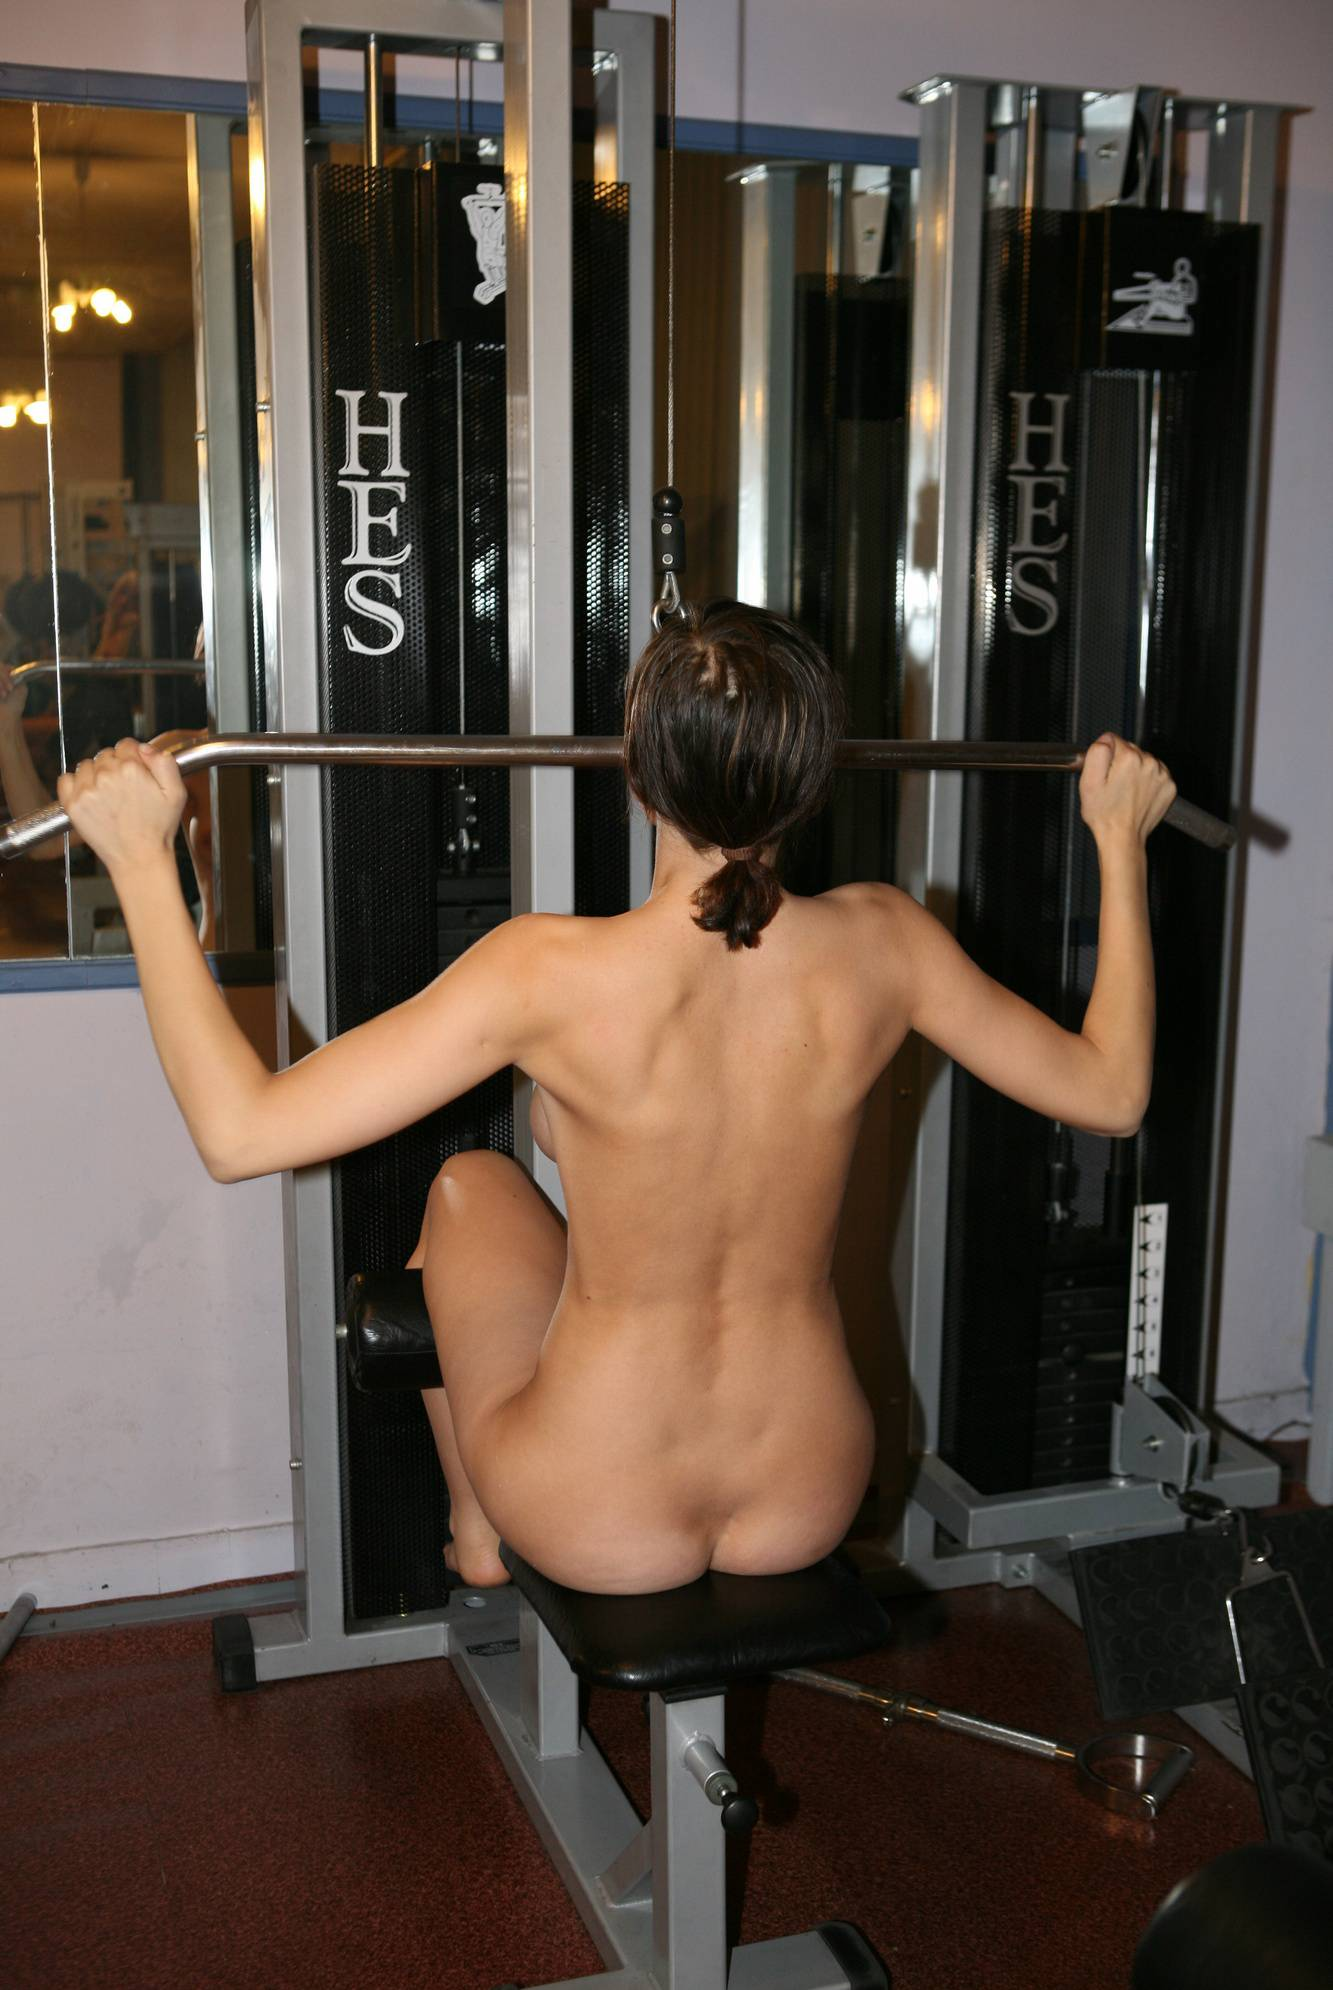 Nudist Pictures Gymnasts Enjoy Pull Ups - 2